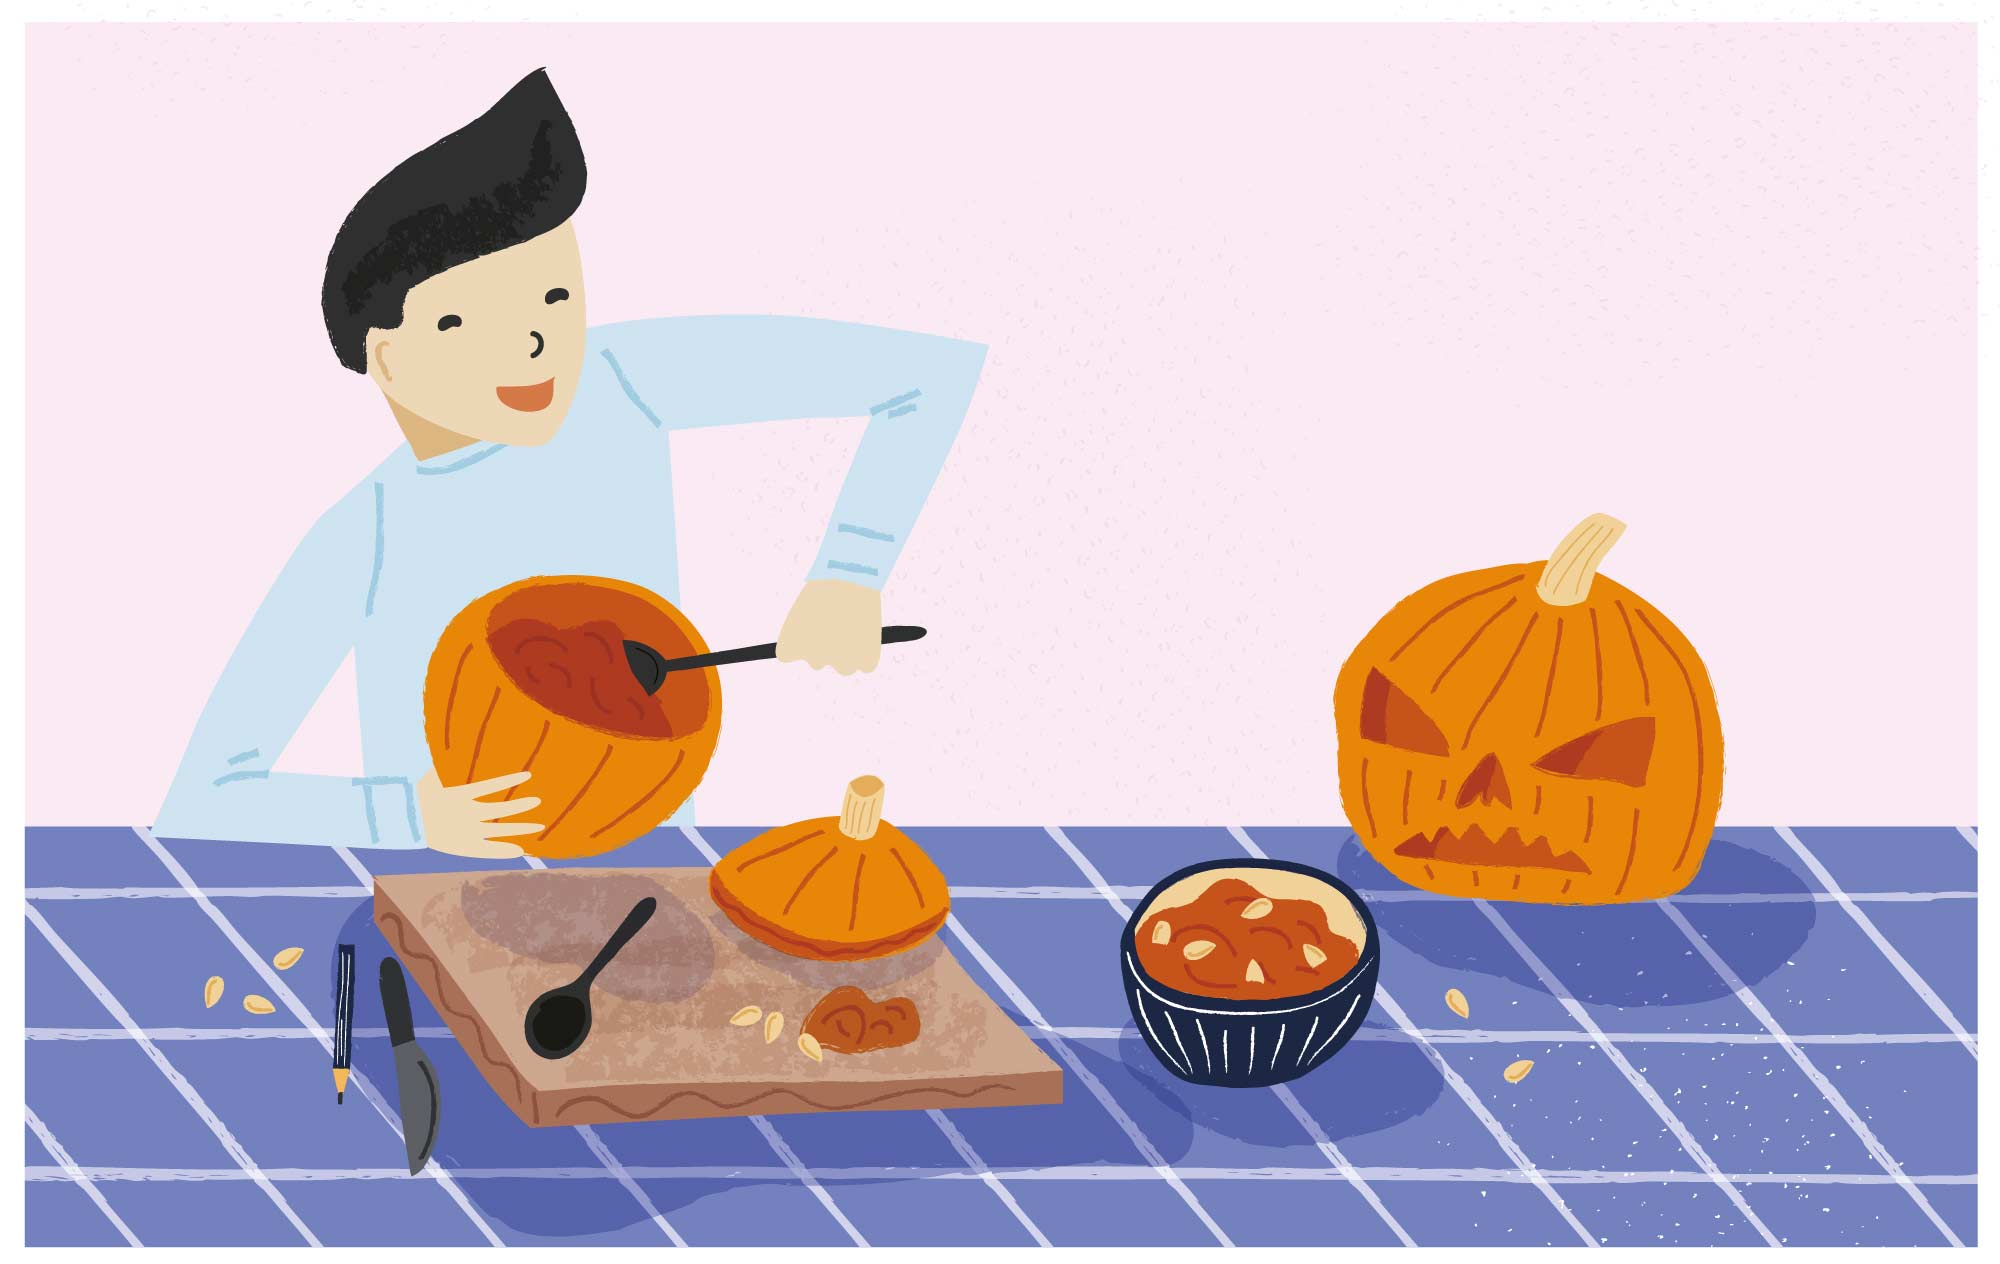 A boy carving a pumpkin by Elly Jahnz, for 2020: Nature Month by Month published by Nosy Crow